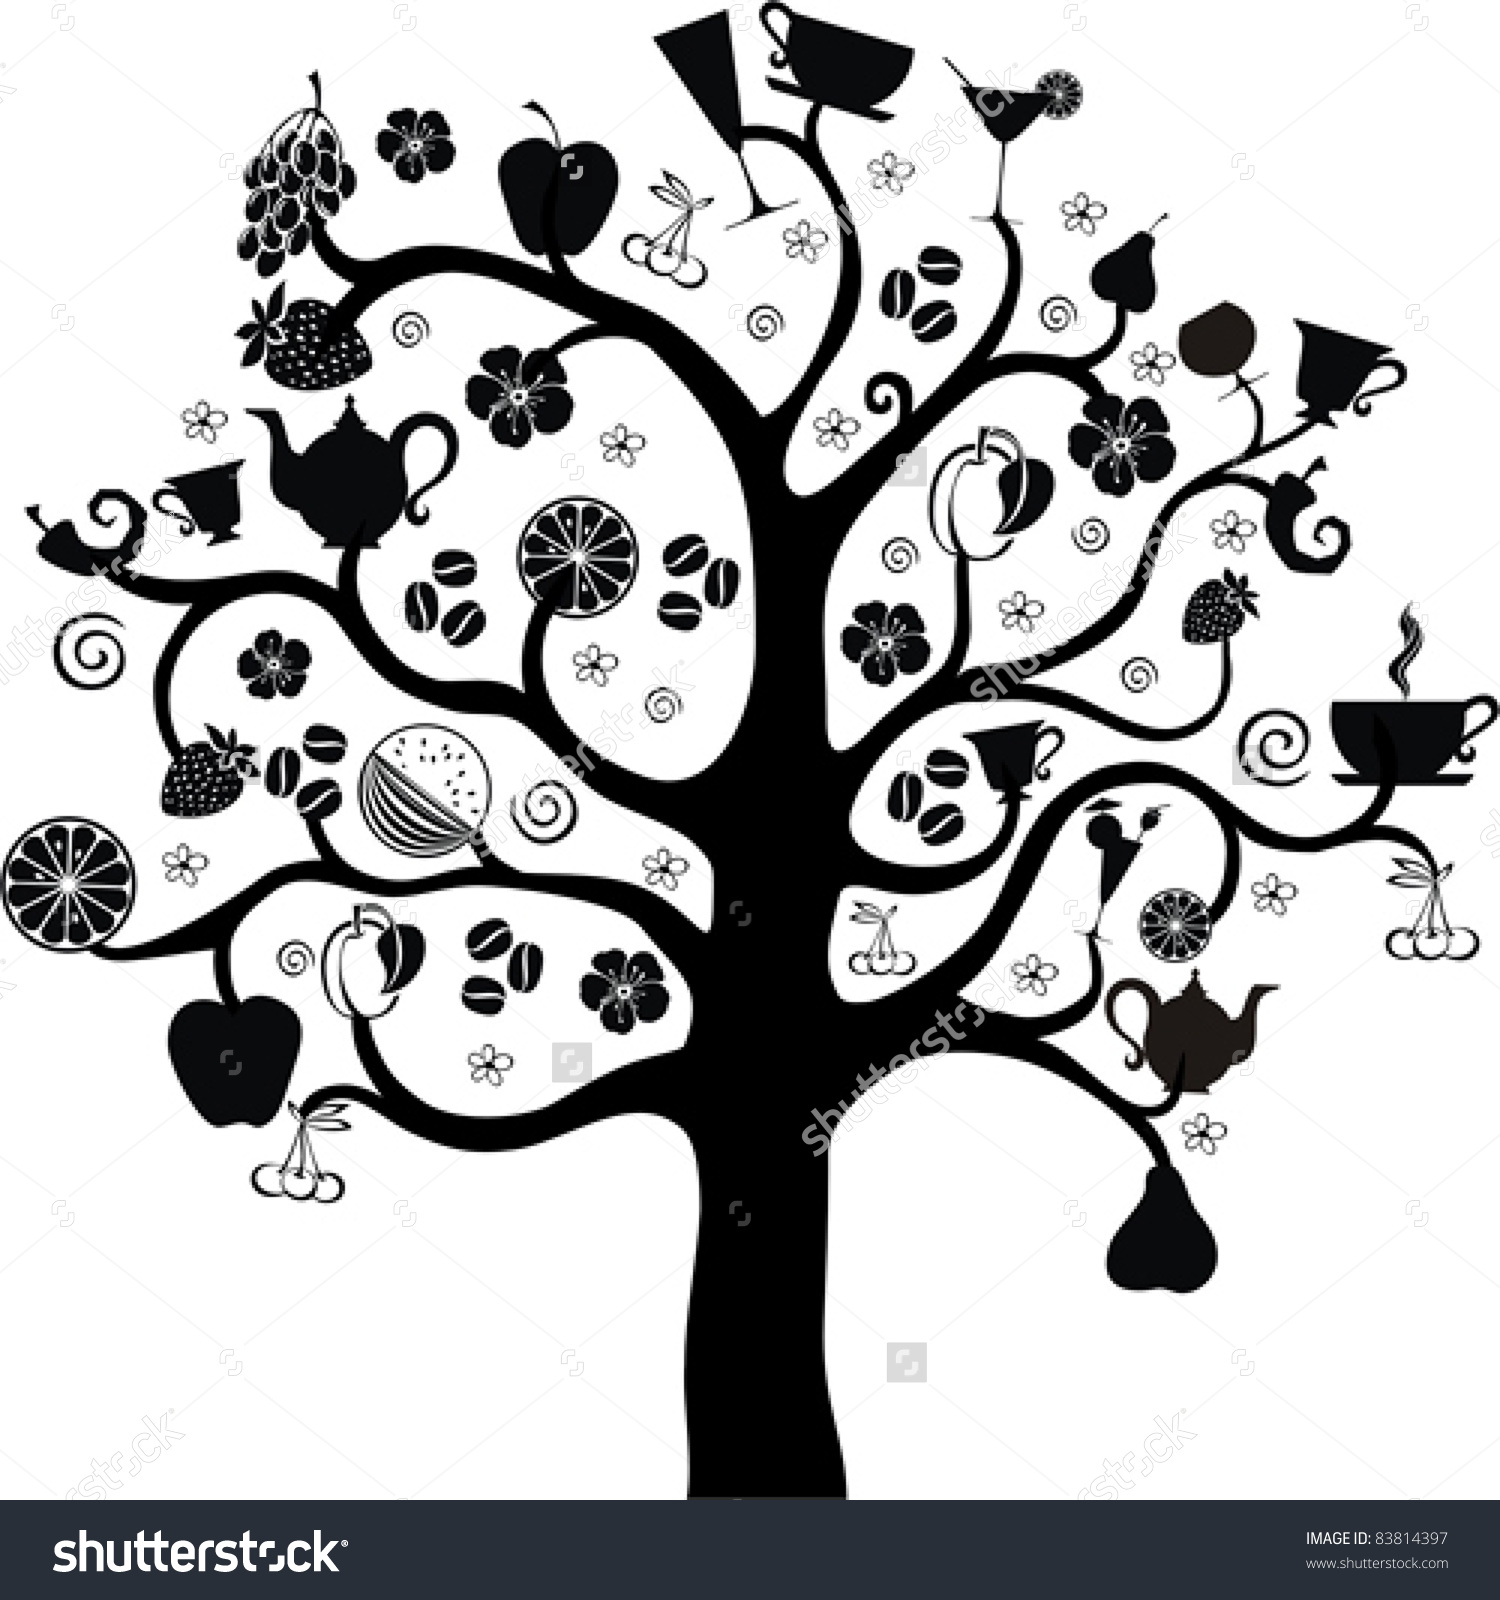 Food from trees clipart png freeuse library Food from trees clipart - ClipartFest png freeuse library